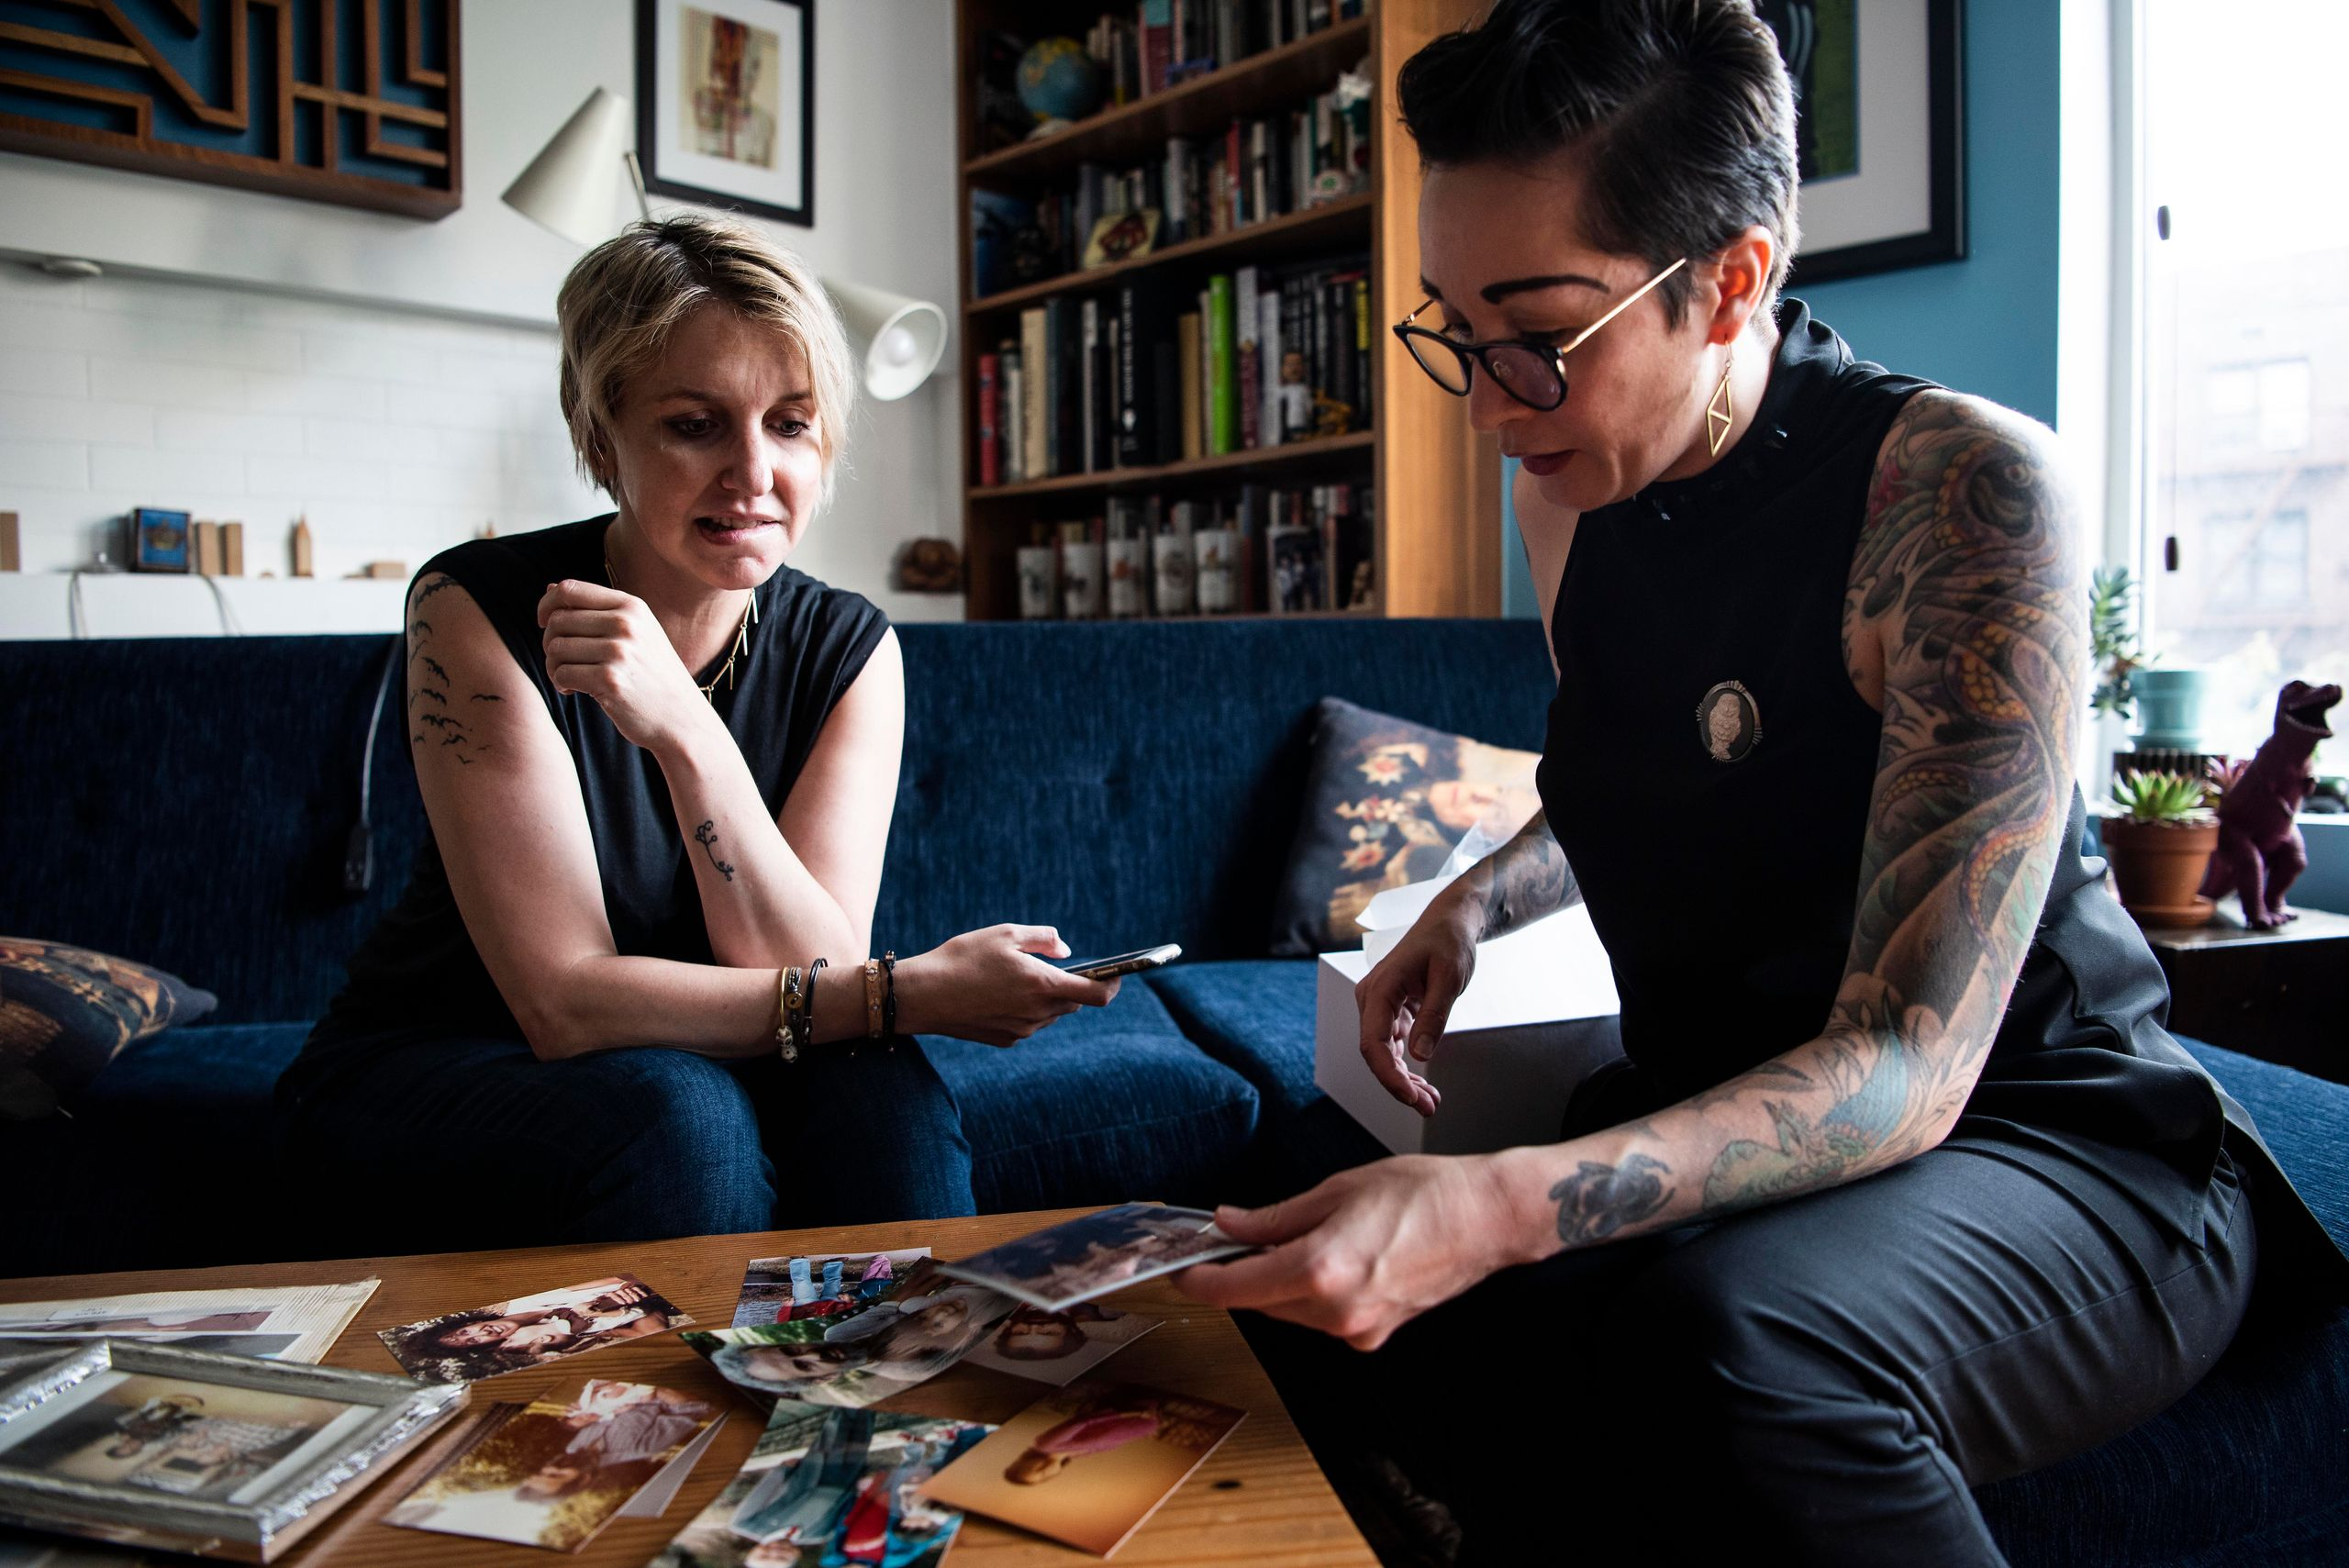 Jess McIntosh, left, and Ali Cole look over family pictures in Cole's Brooklyn, New York, home.